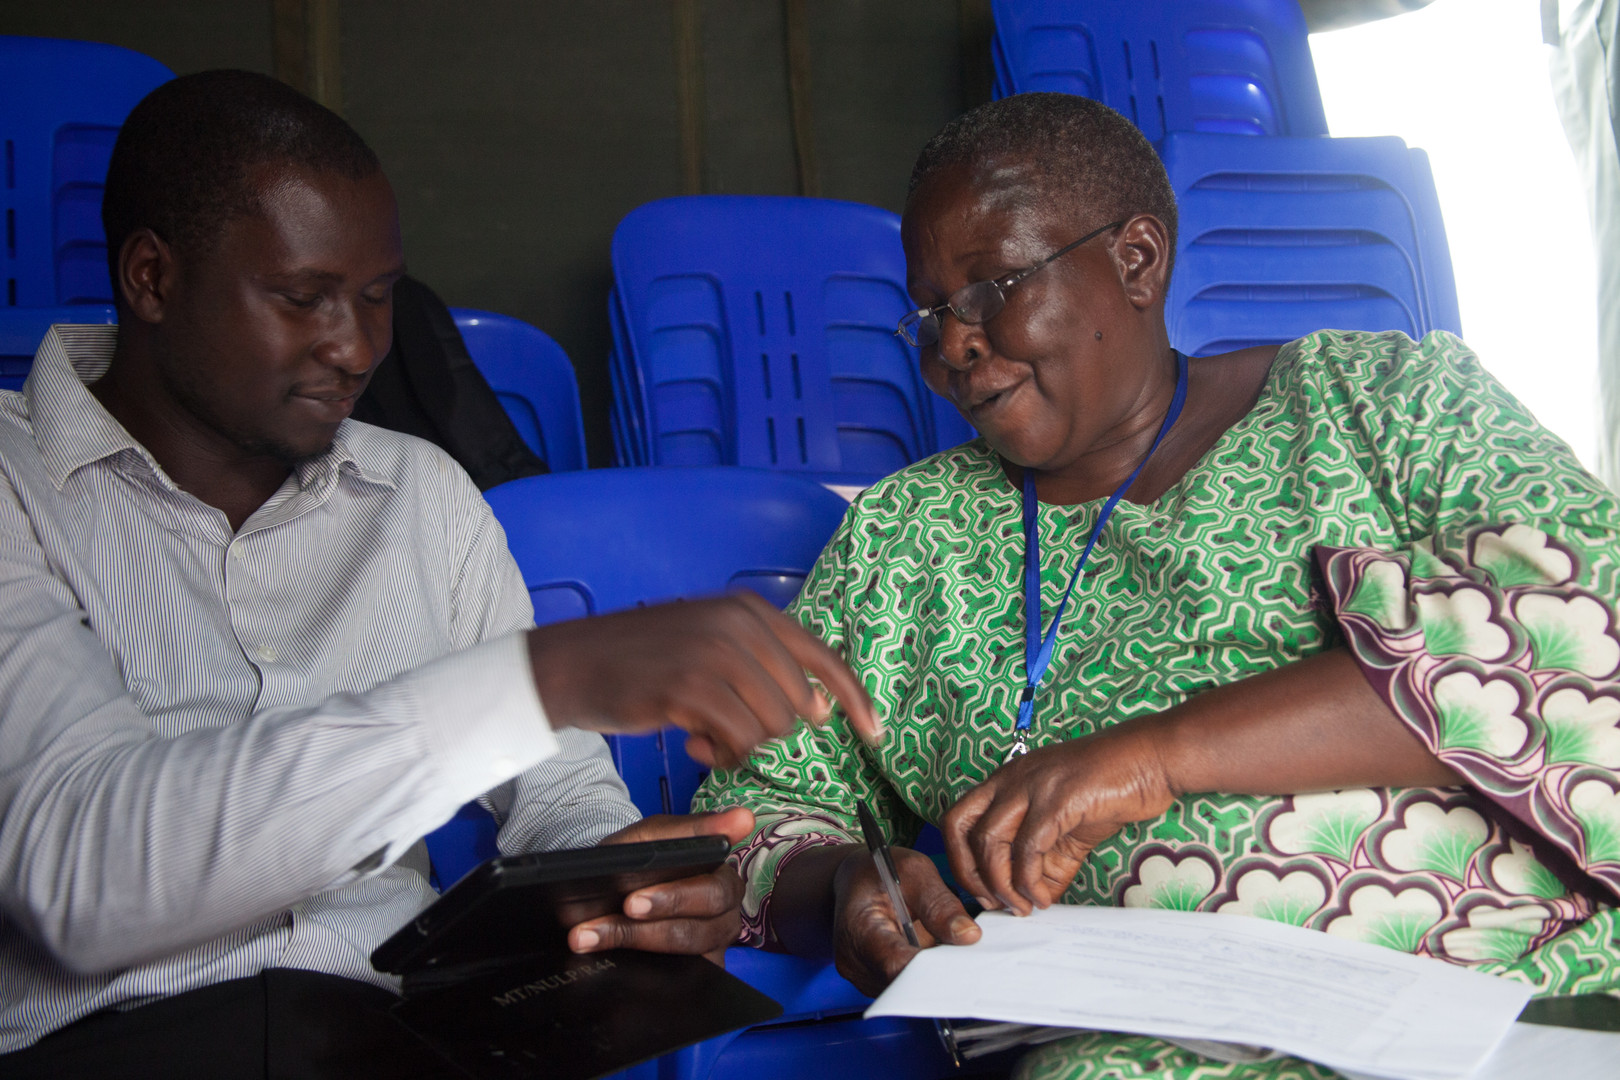 Enumerators practice administering the EGRA on each other.